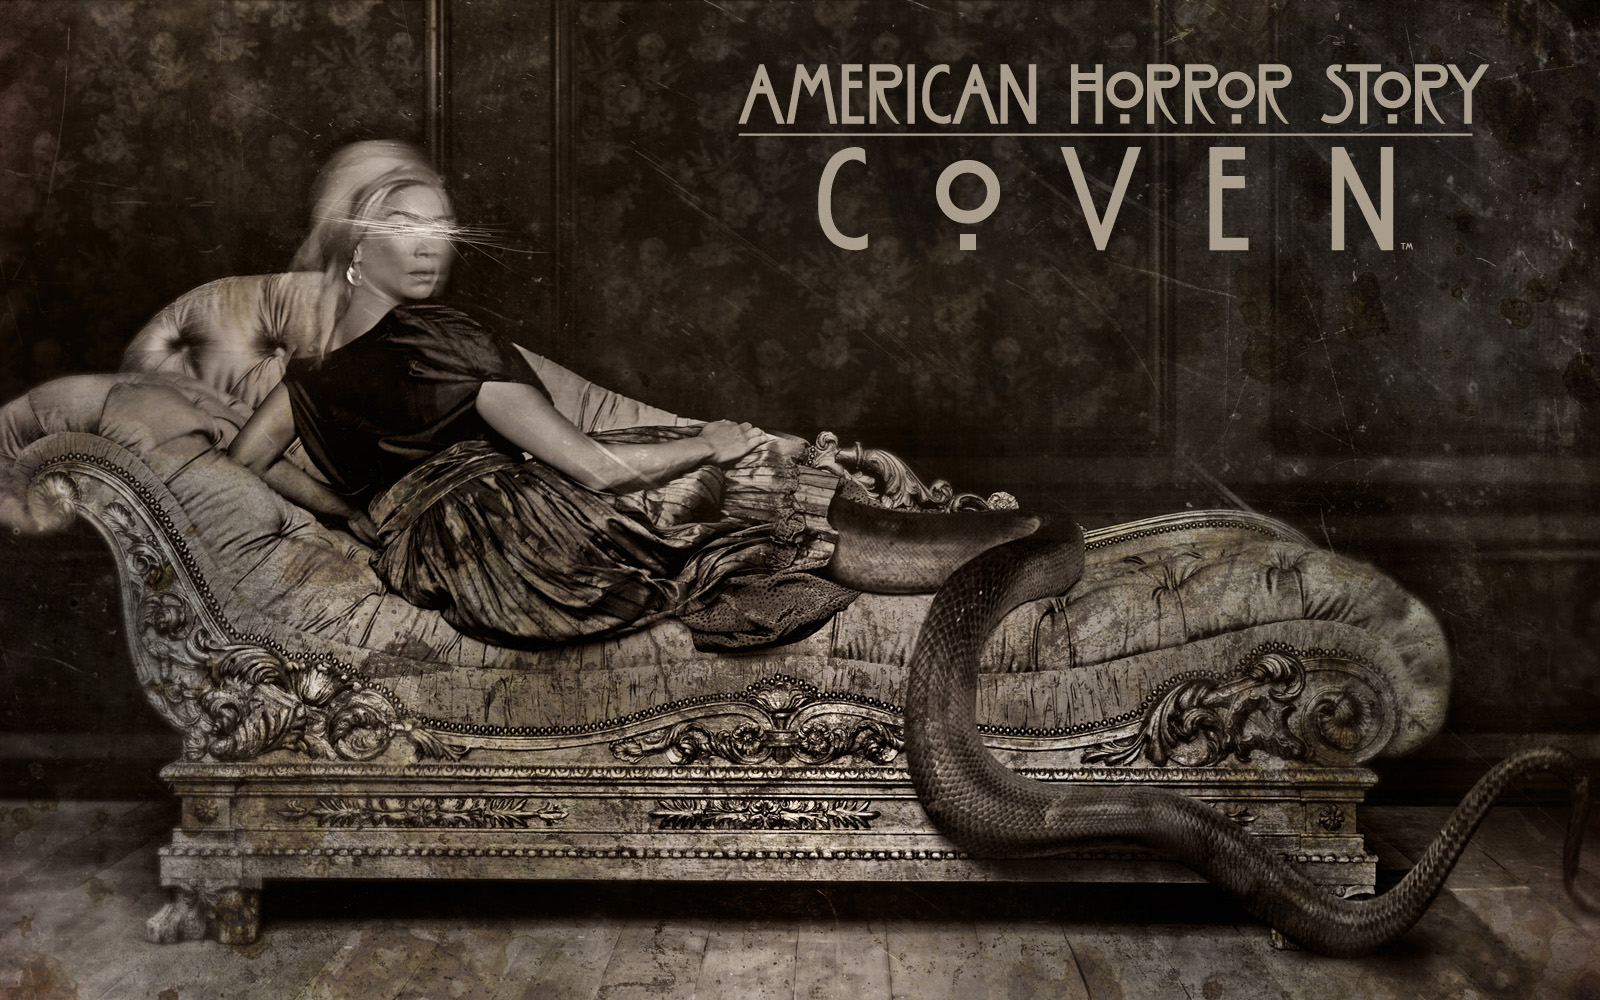 50 American Horror Story Iphone Wallpaper On Wallpapersafari